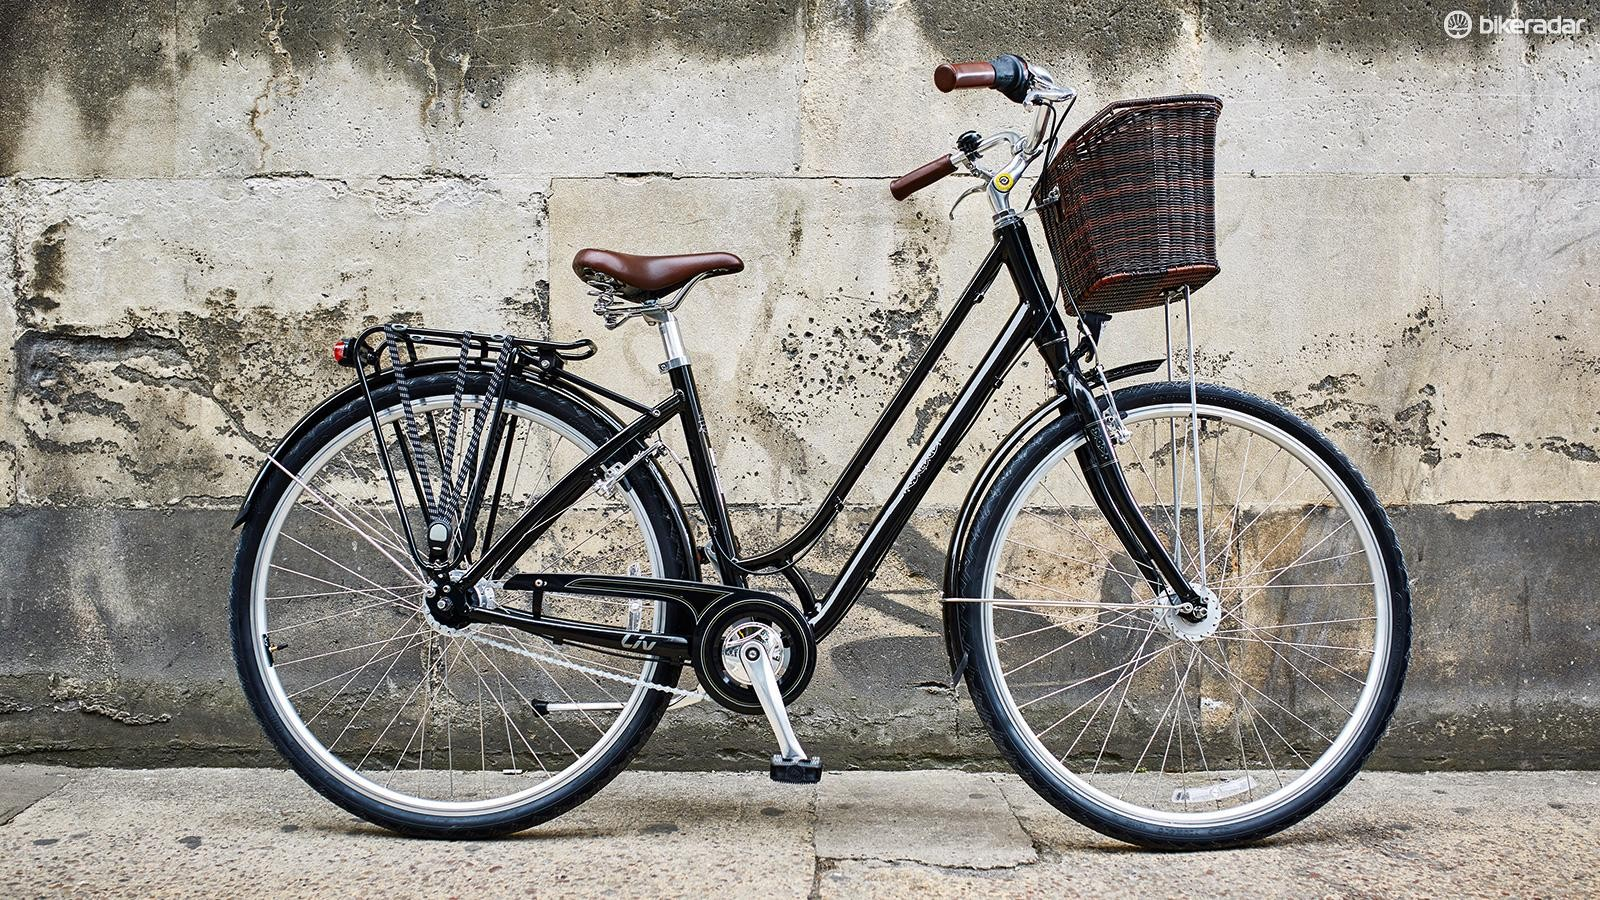 The Liv Flourish is a practical and beautiful city bike